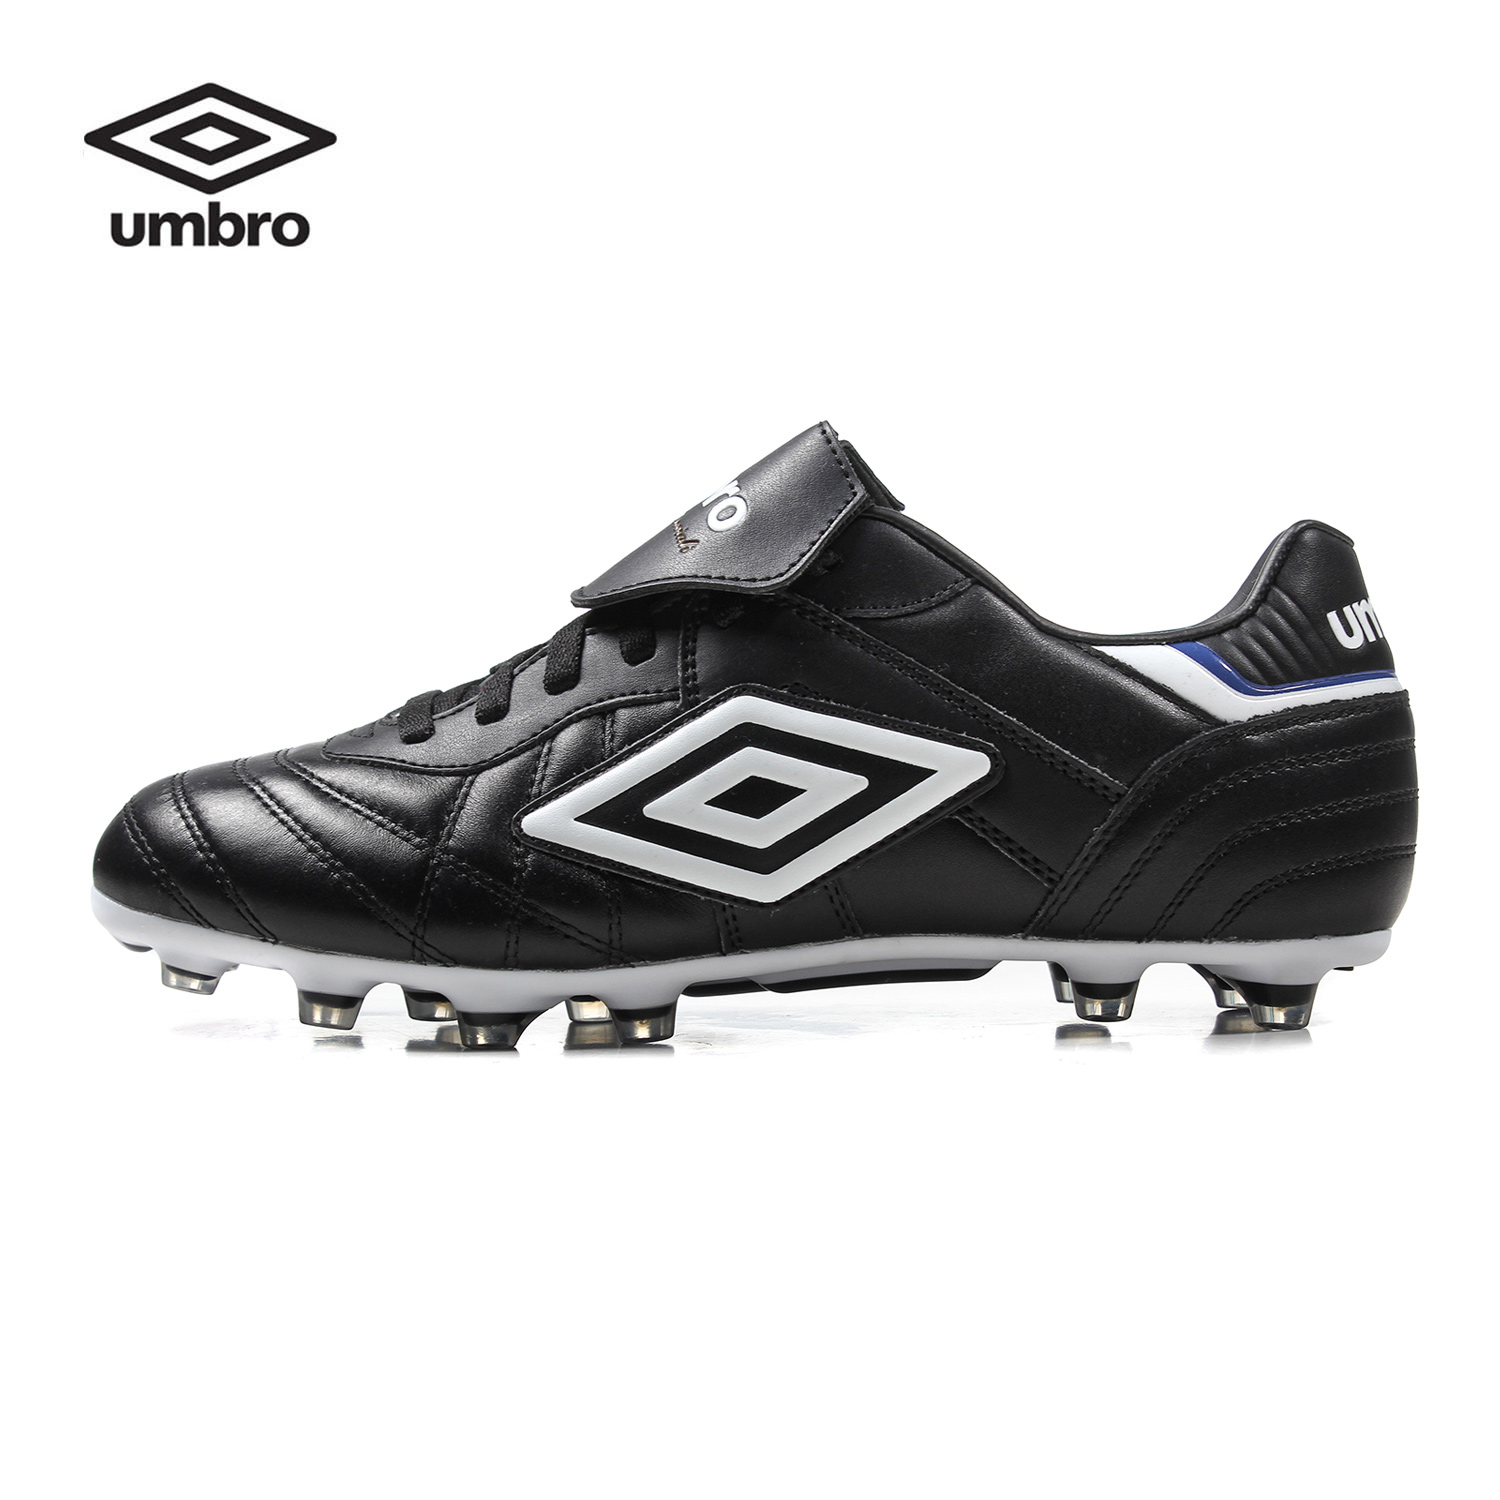 aa41e1ef2 Umbro Men s Outdoor Soccer Shoes Soft Ground(SG) Hard Court Leather Lace-up Football  Boots Men Sneakers Sports Shoes Ucb90113 ~ Super Deal May 2019